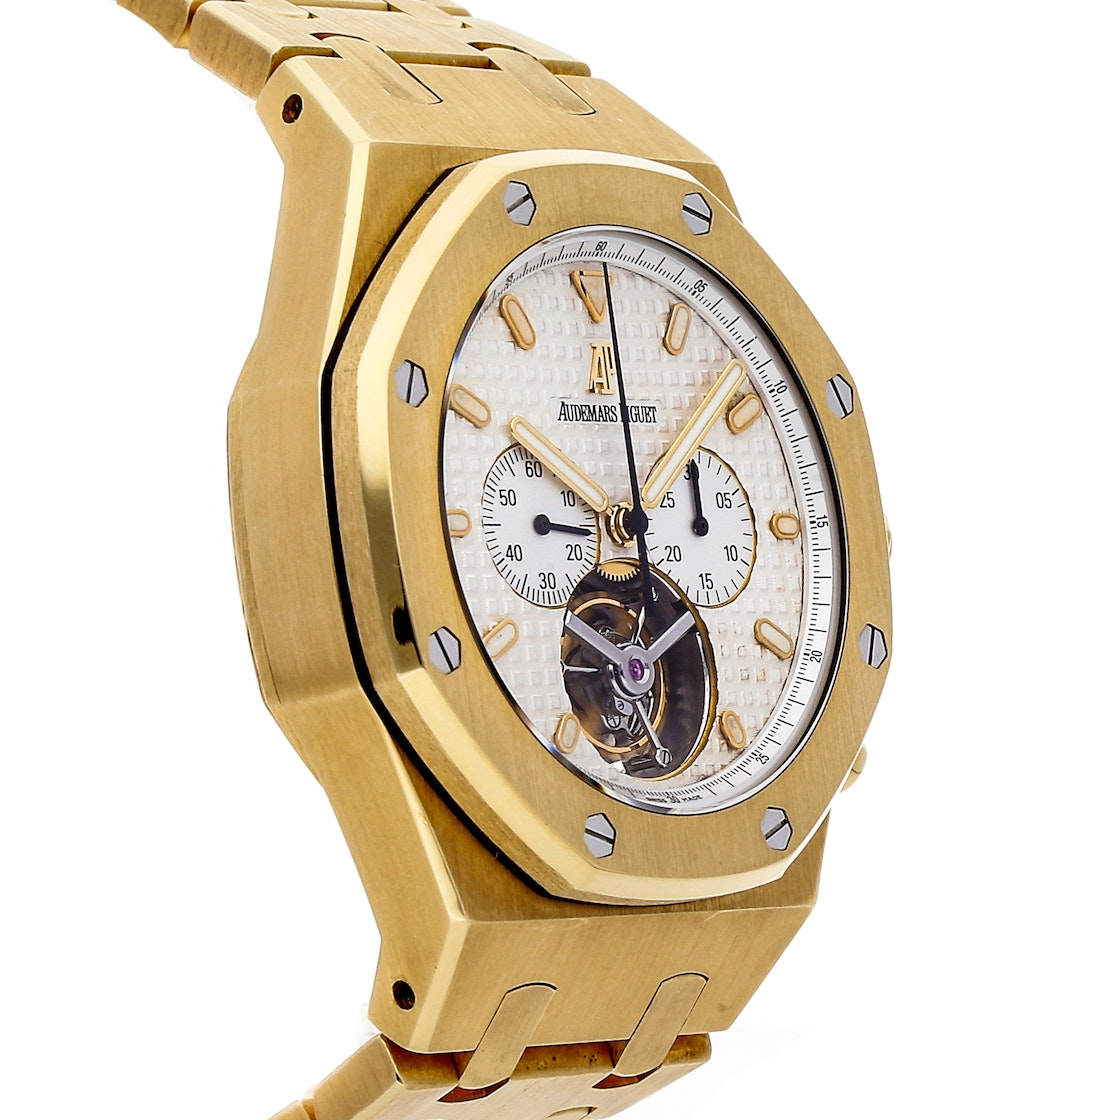 Audemars Piguet Royal Oak Tourbillon Chronograph 25977BA.OO.1205BA.02